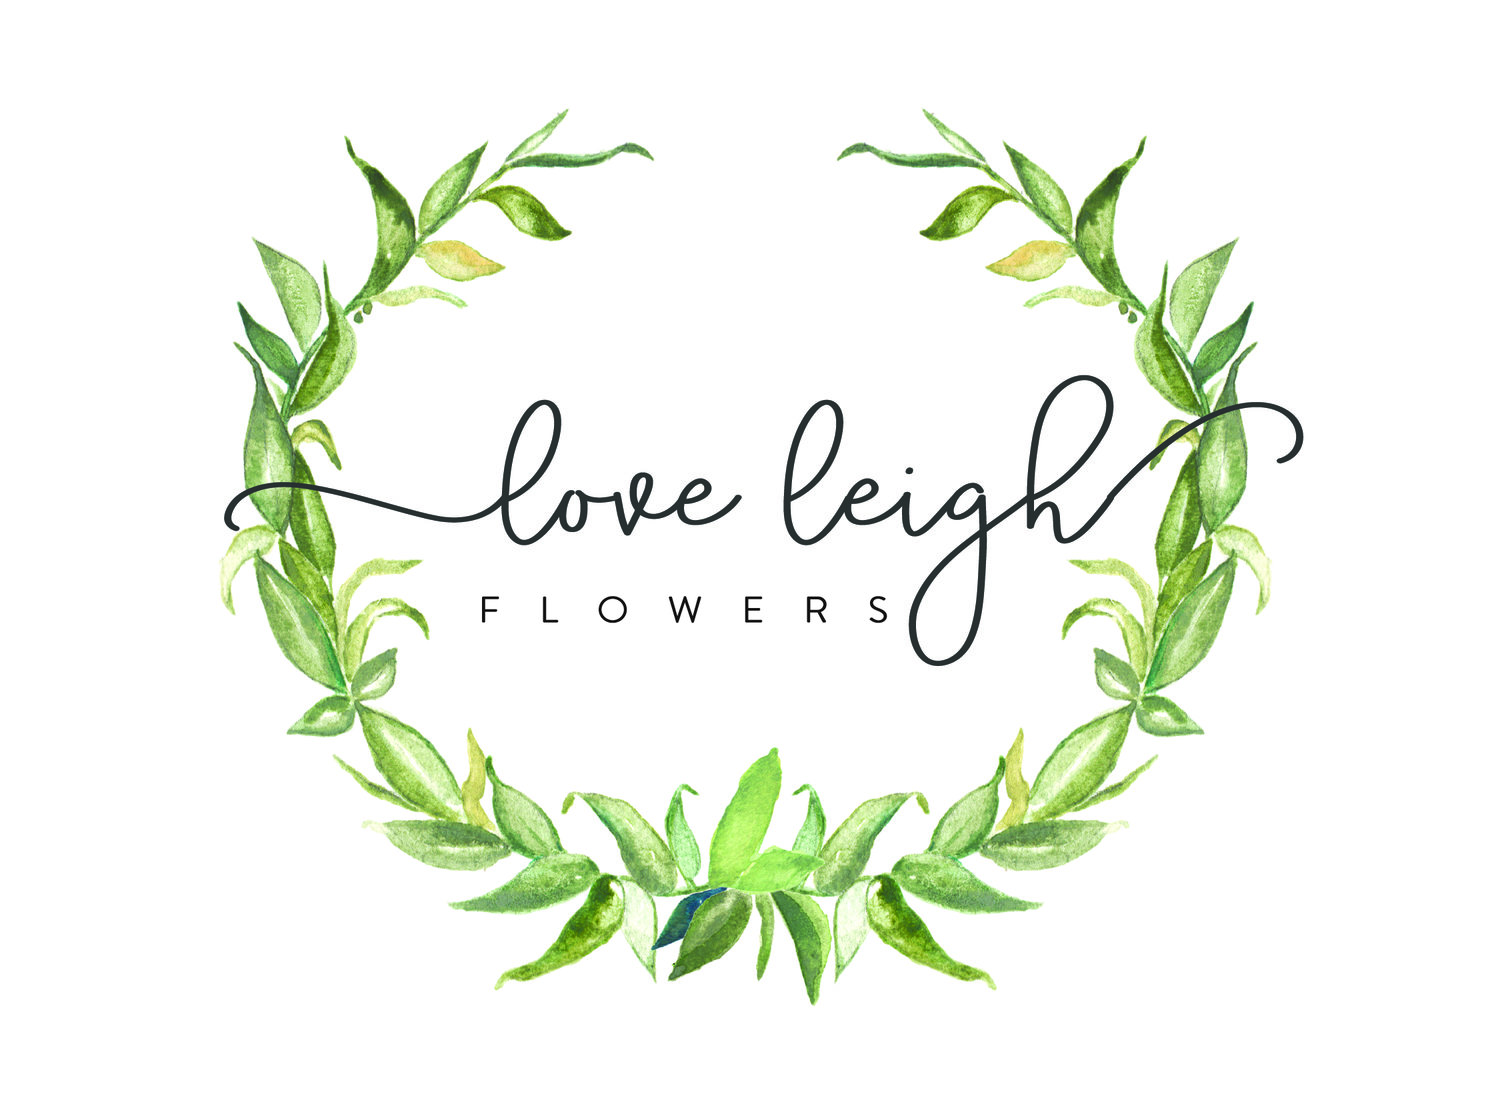 LoveLeigh Flowers